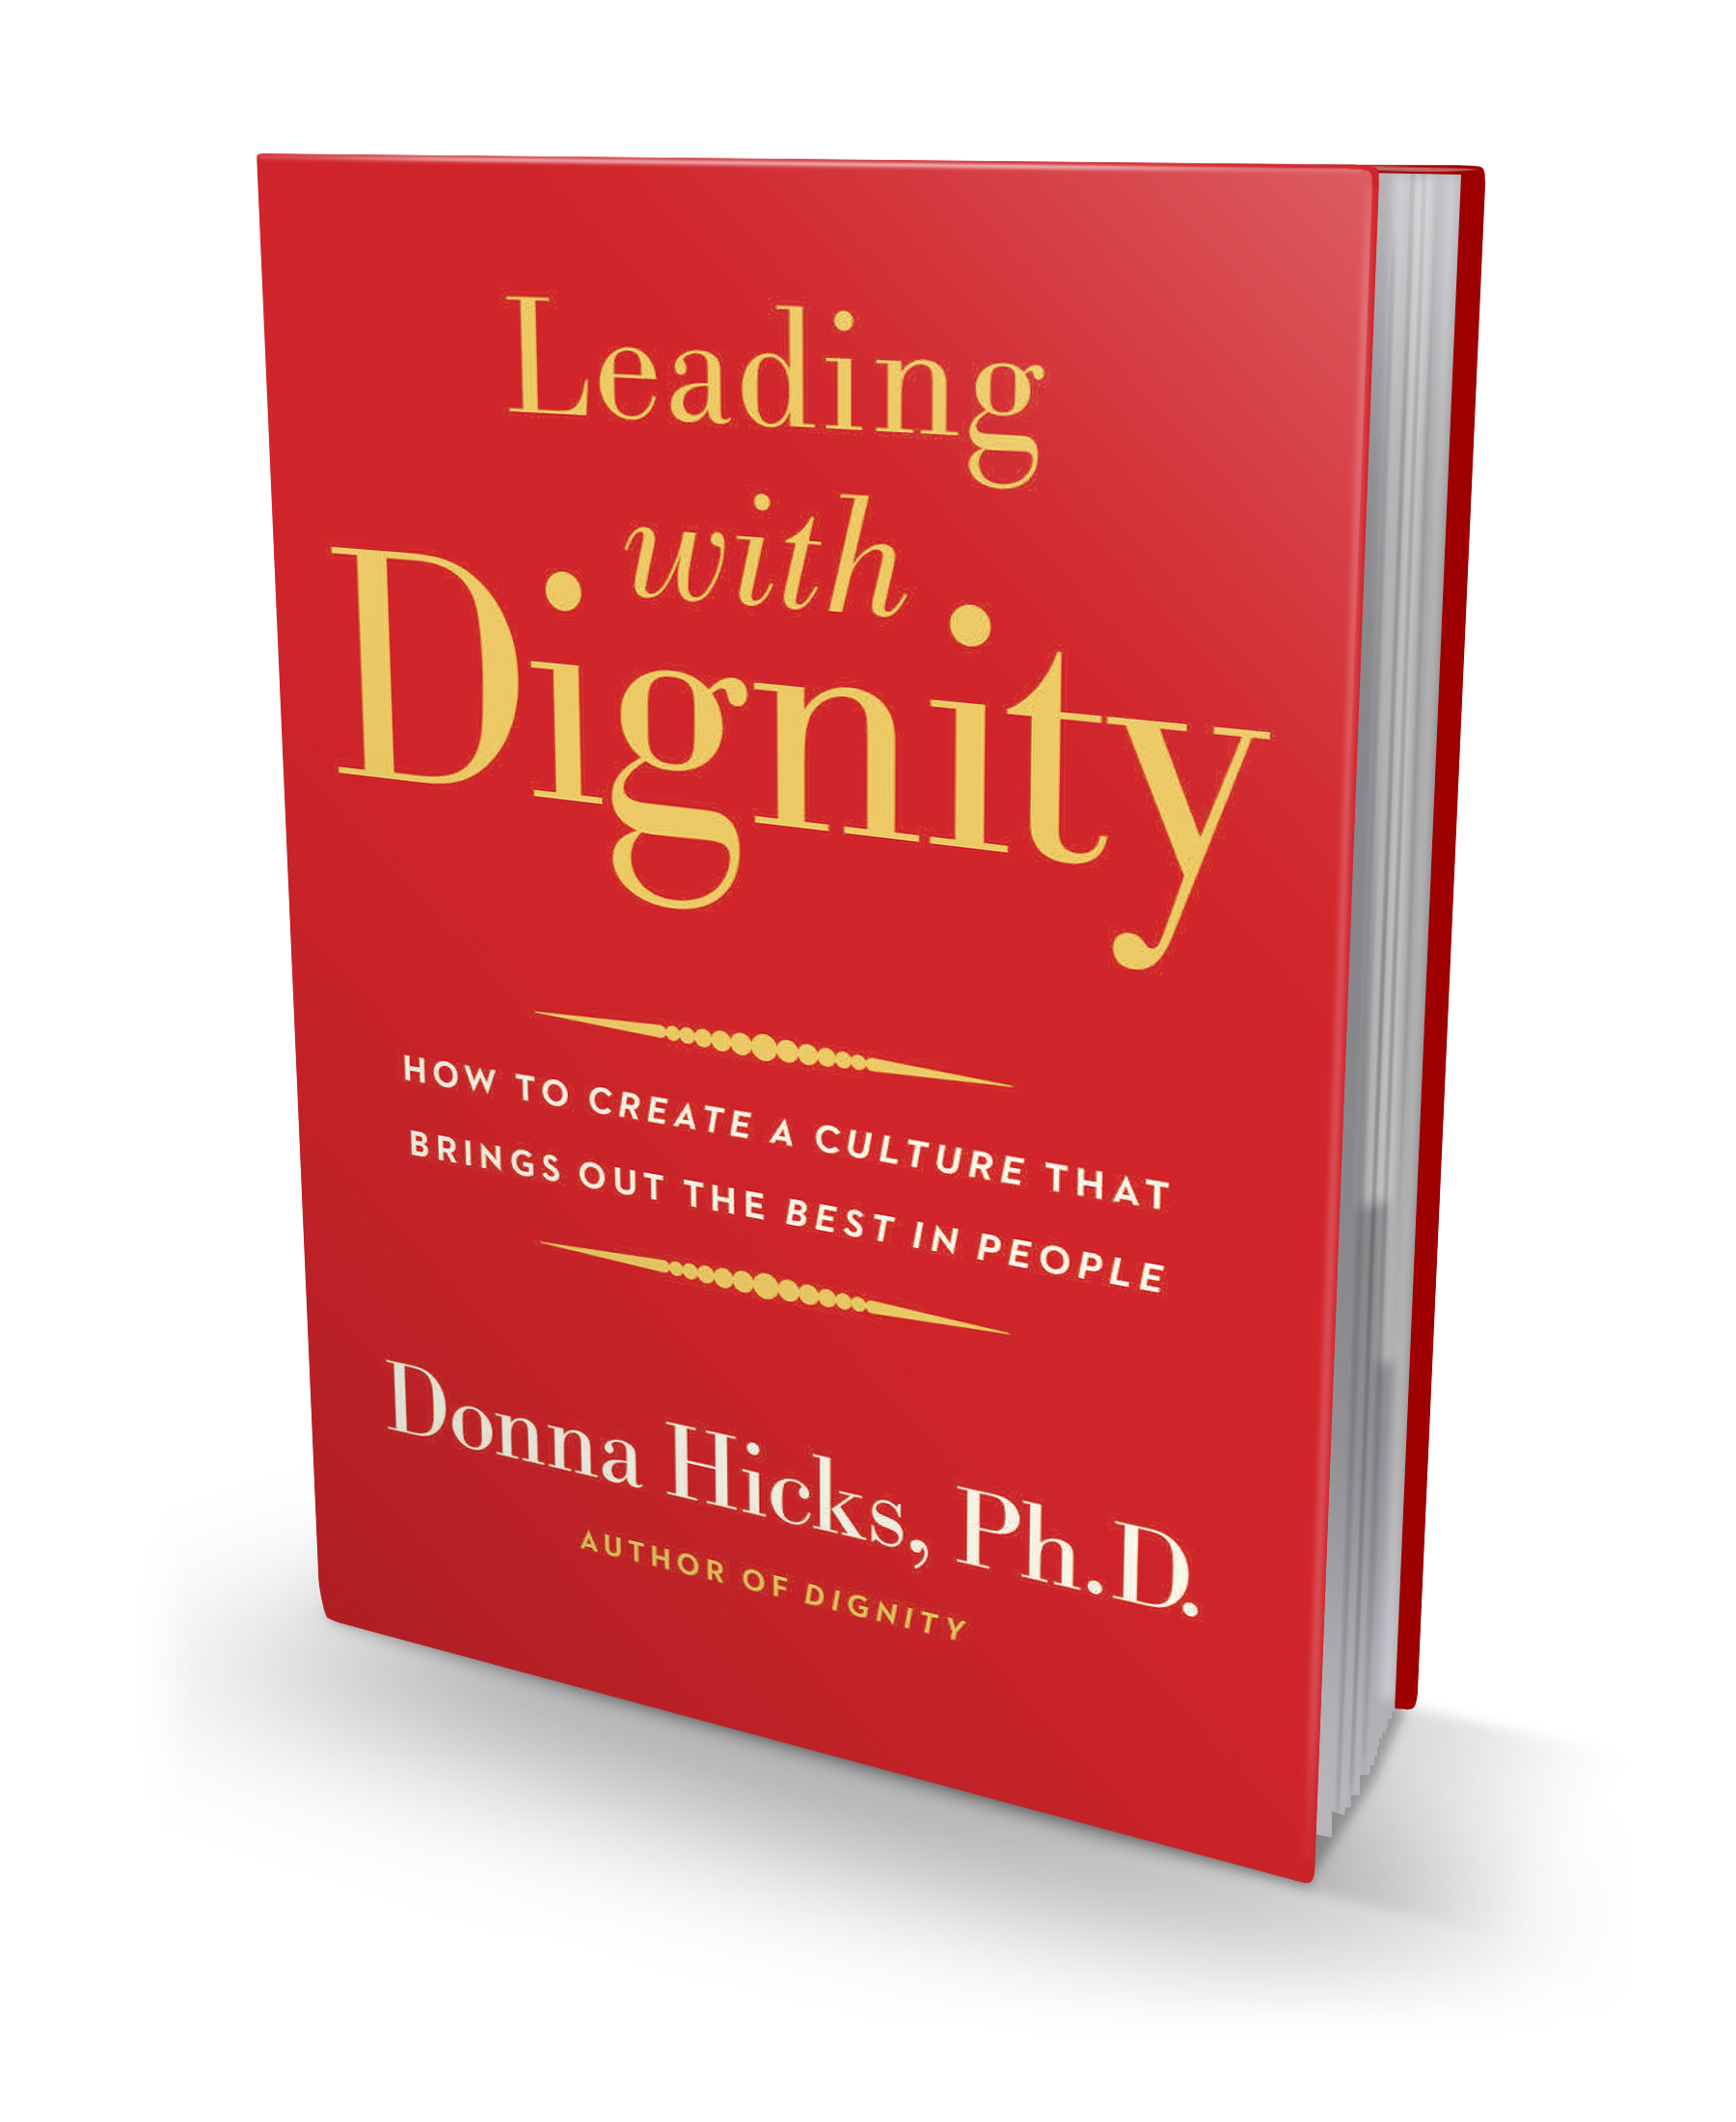 leading with dignity book cover skip prichard leadership insights